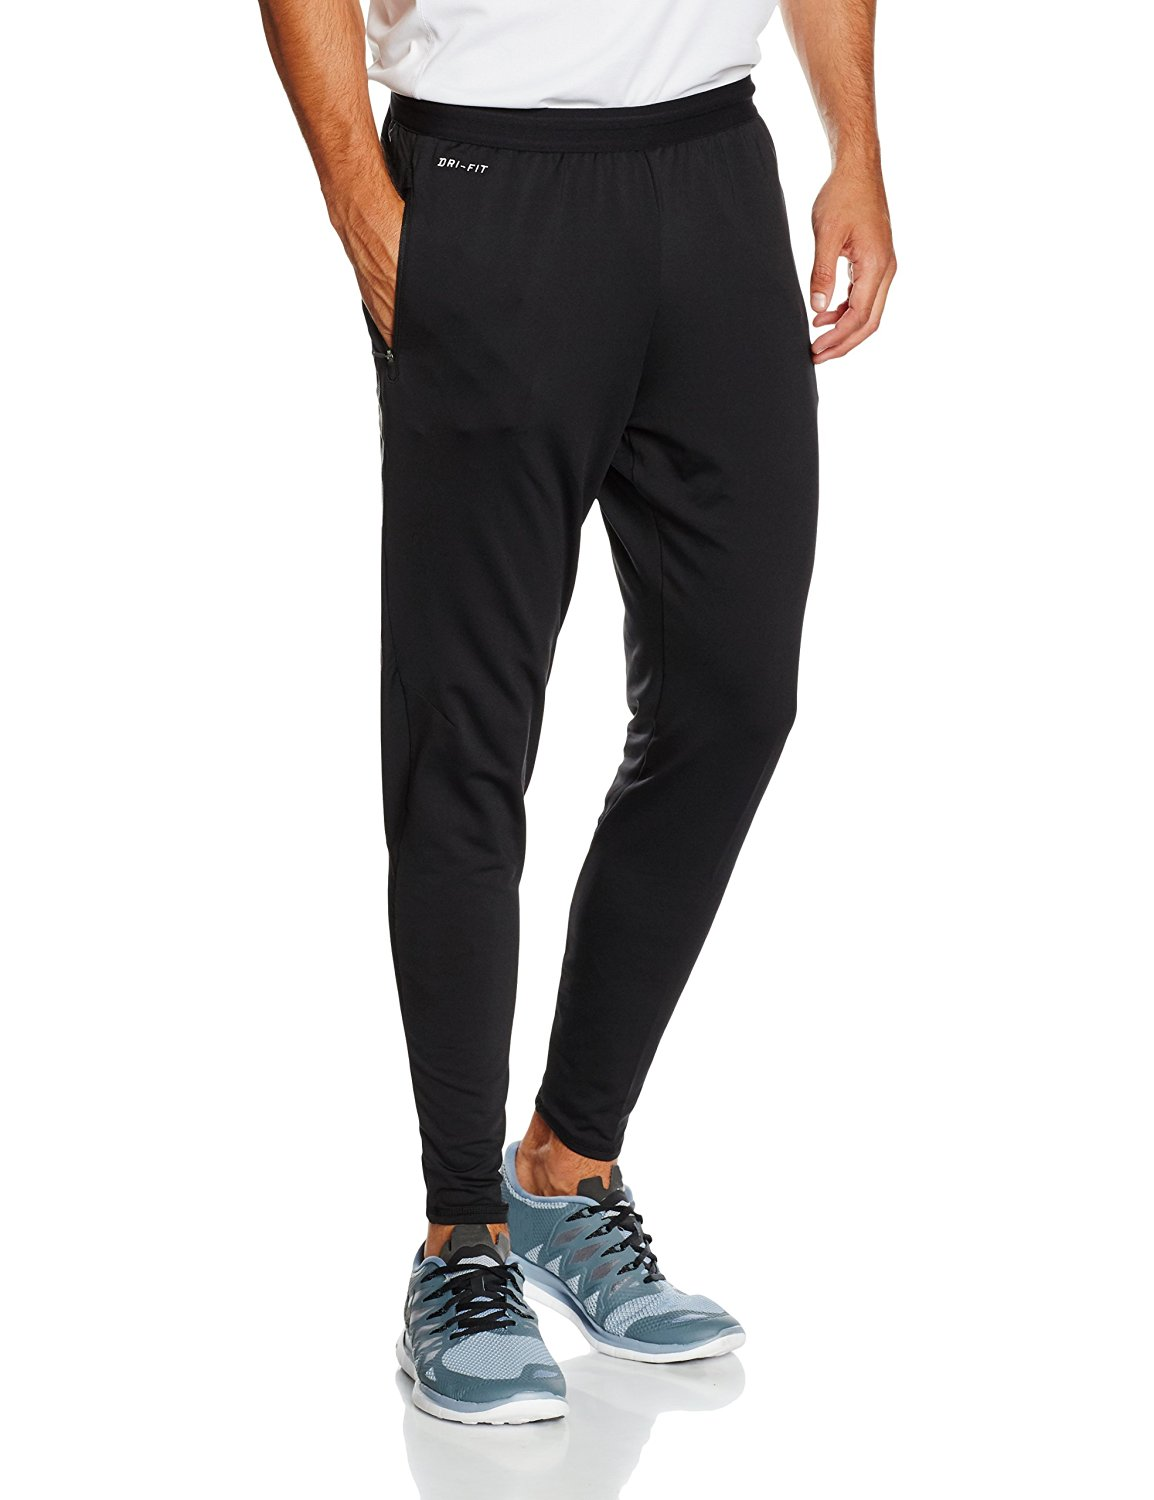 a6186f563393 Get Quotations · Nike Strike Elite Black Mens Football Pants Trousers